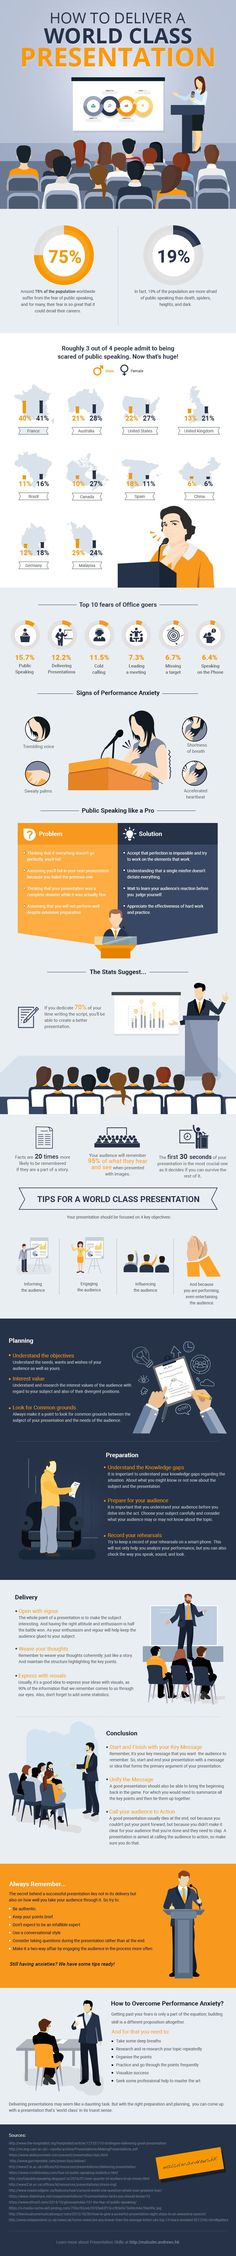 How to Deliver a World Class Presentation Infographic - https://elearninginfographics.com/deliver-world-class-presentation-infographic/